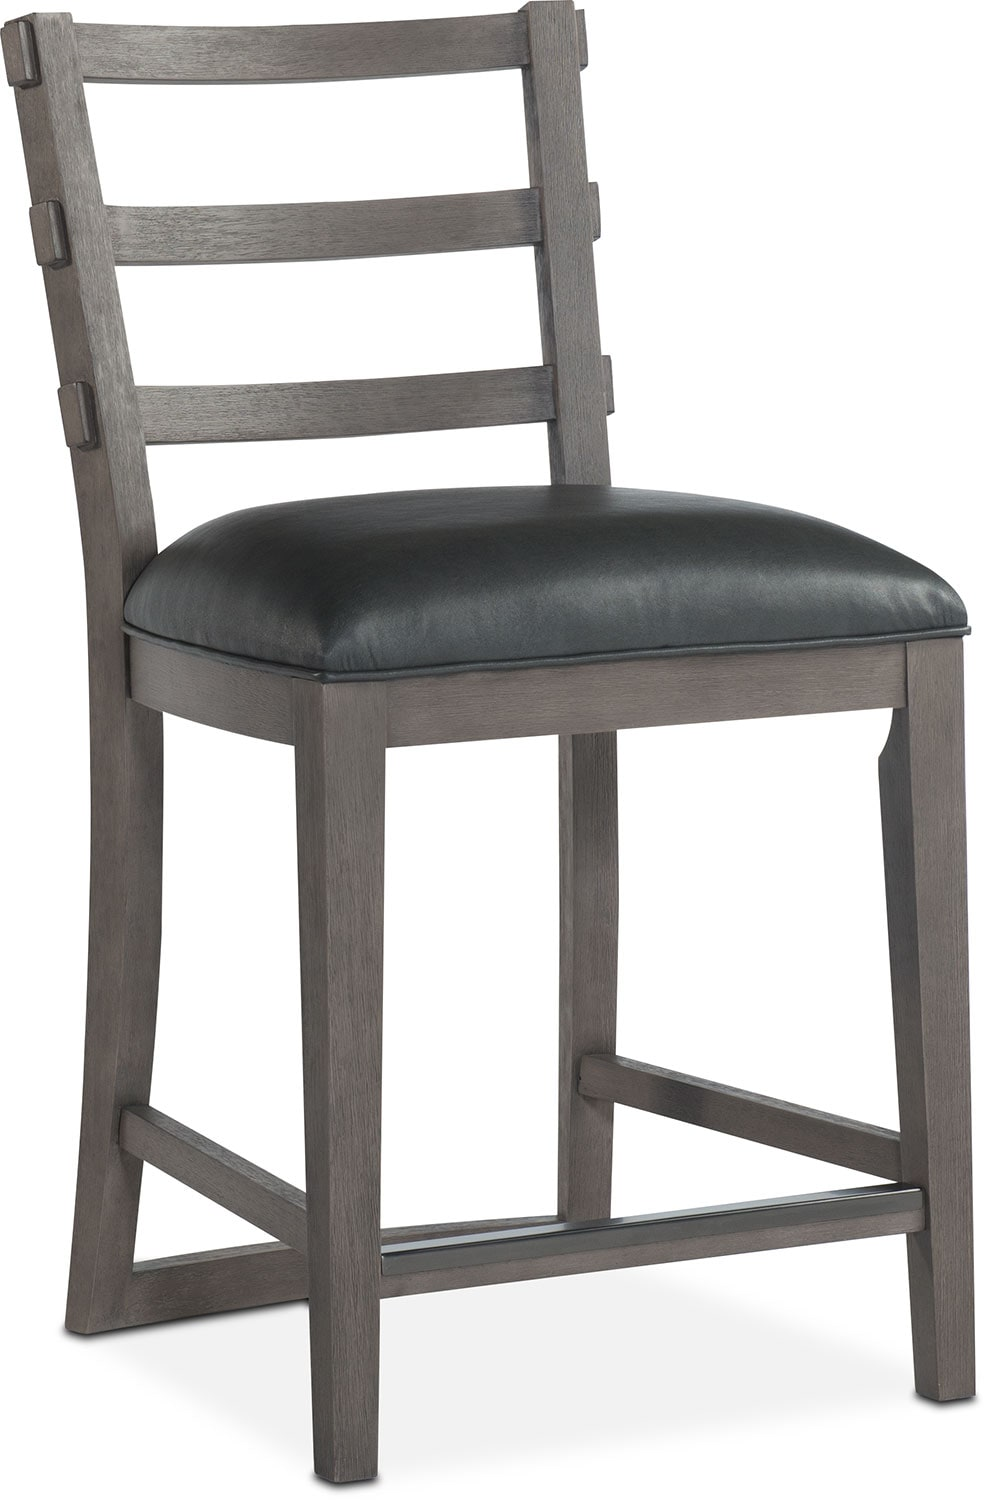 High Quality Malibu Counter Height Stool   Gray